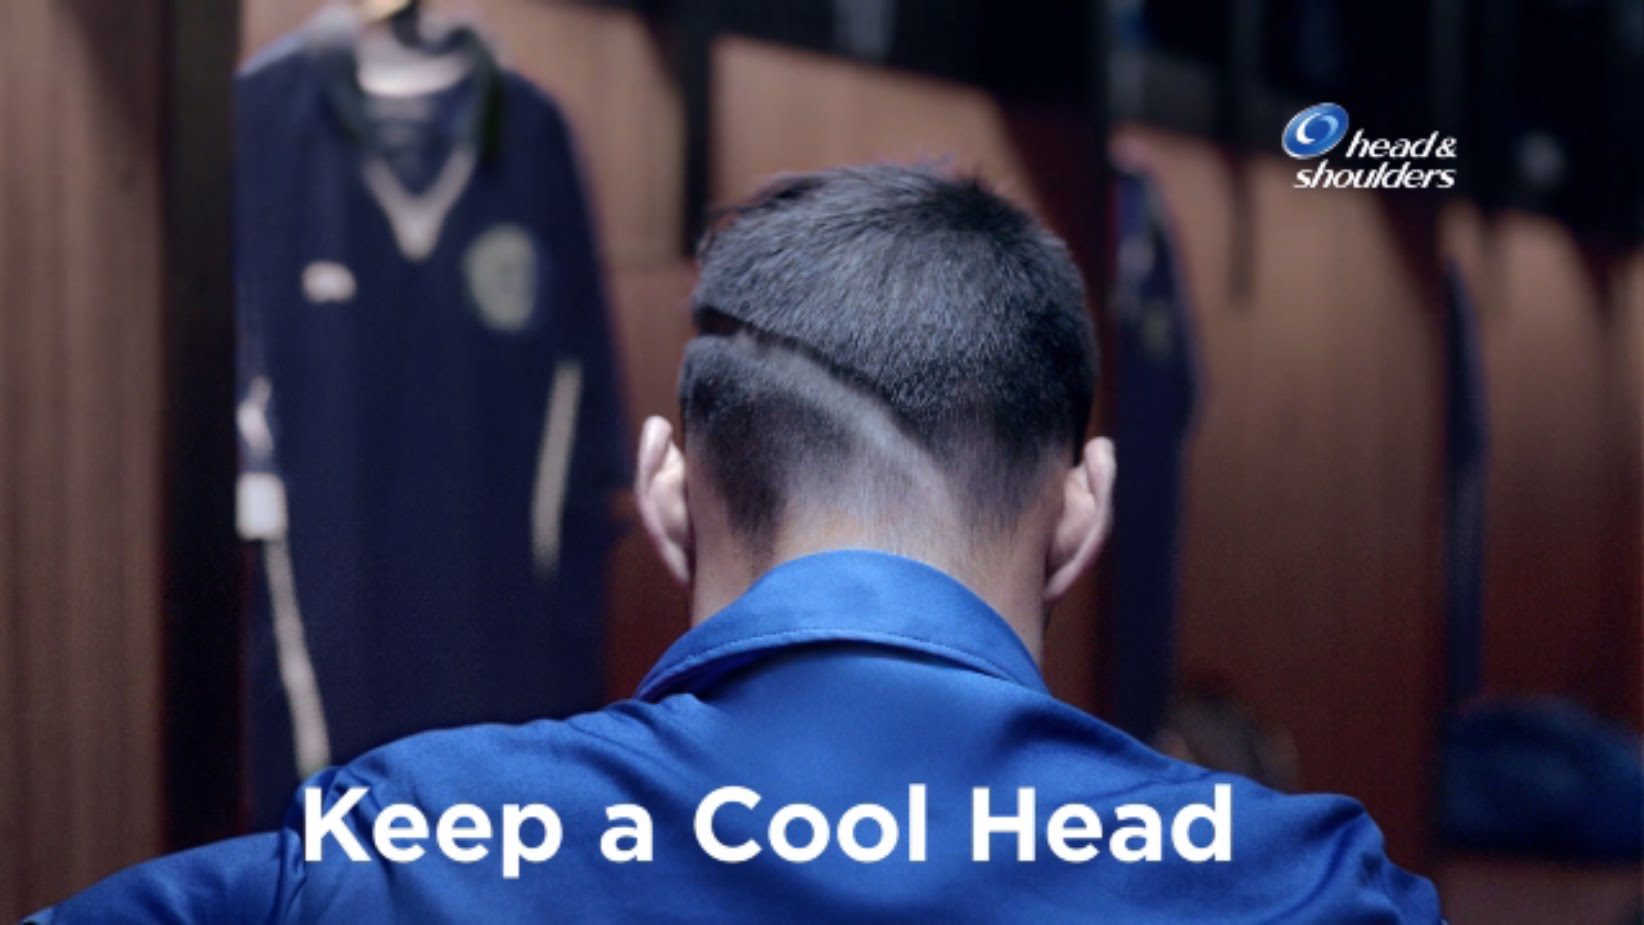 H&S - Keep a cool head